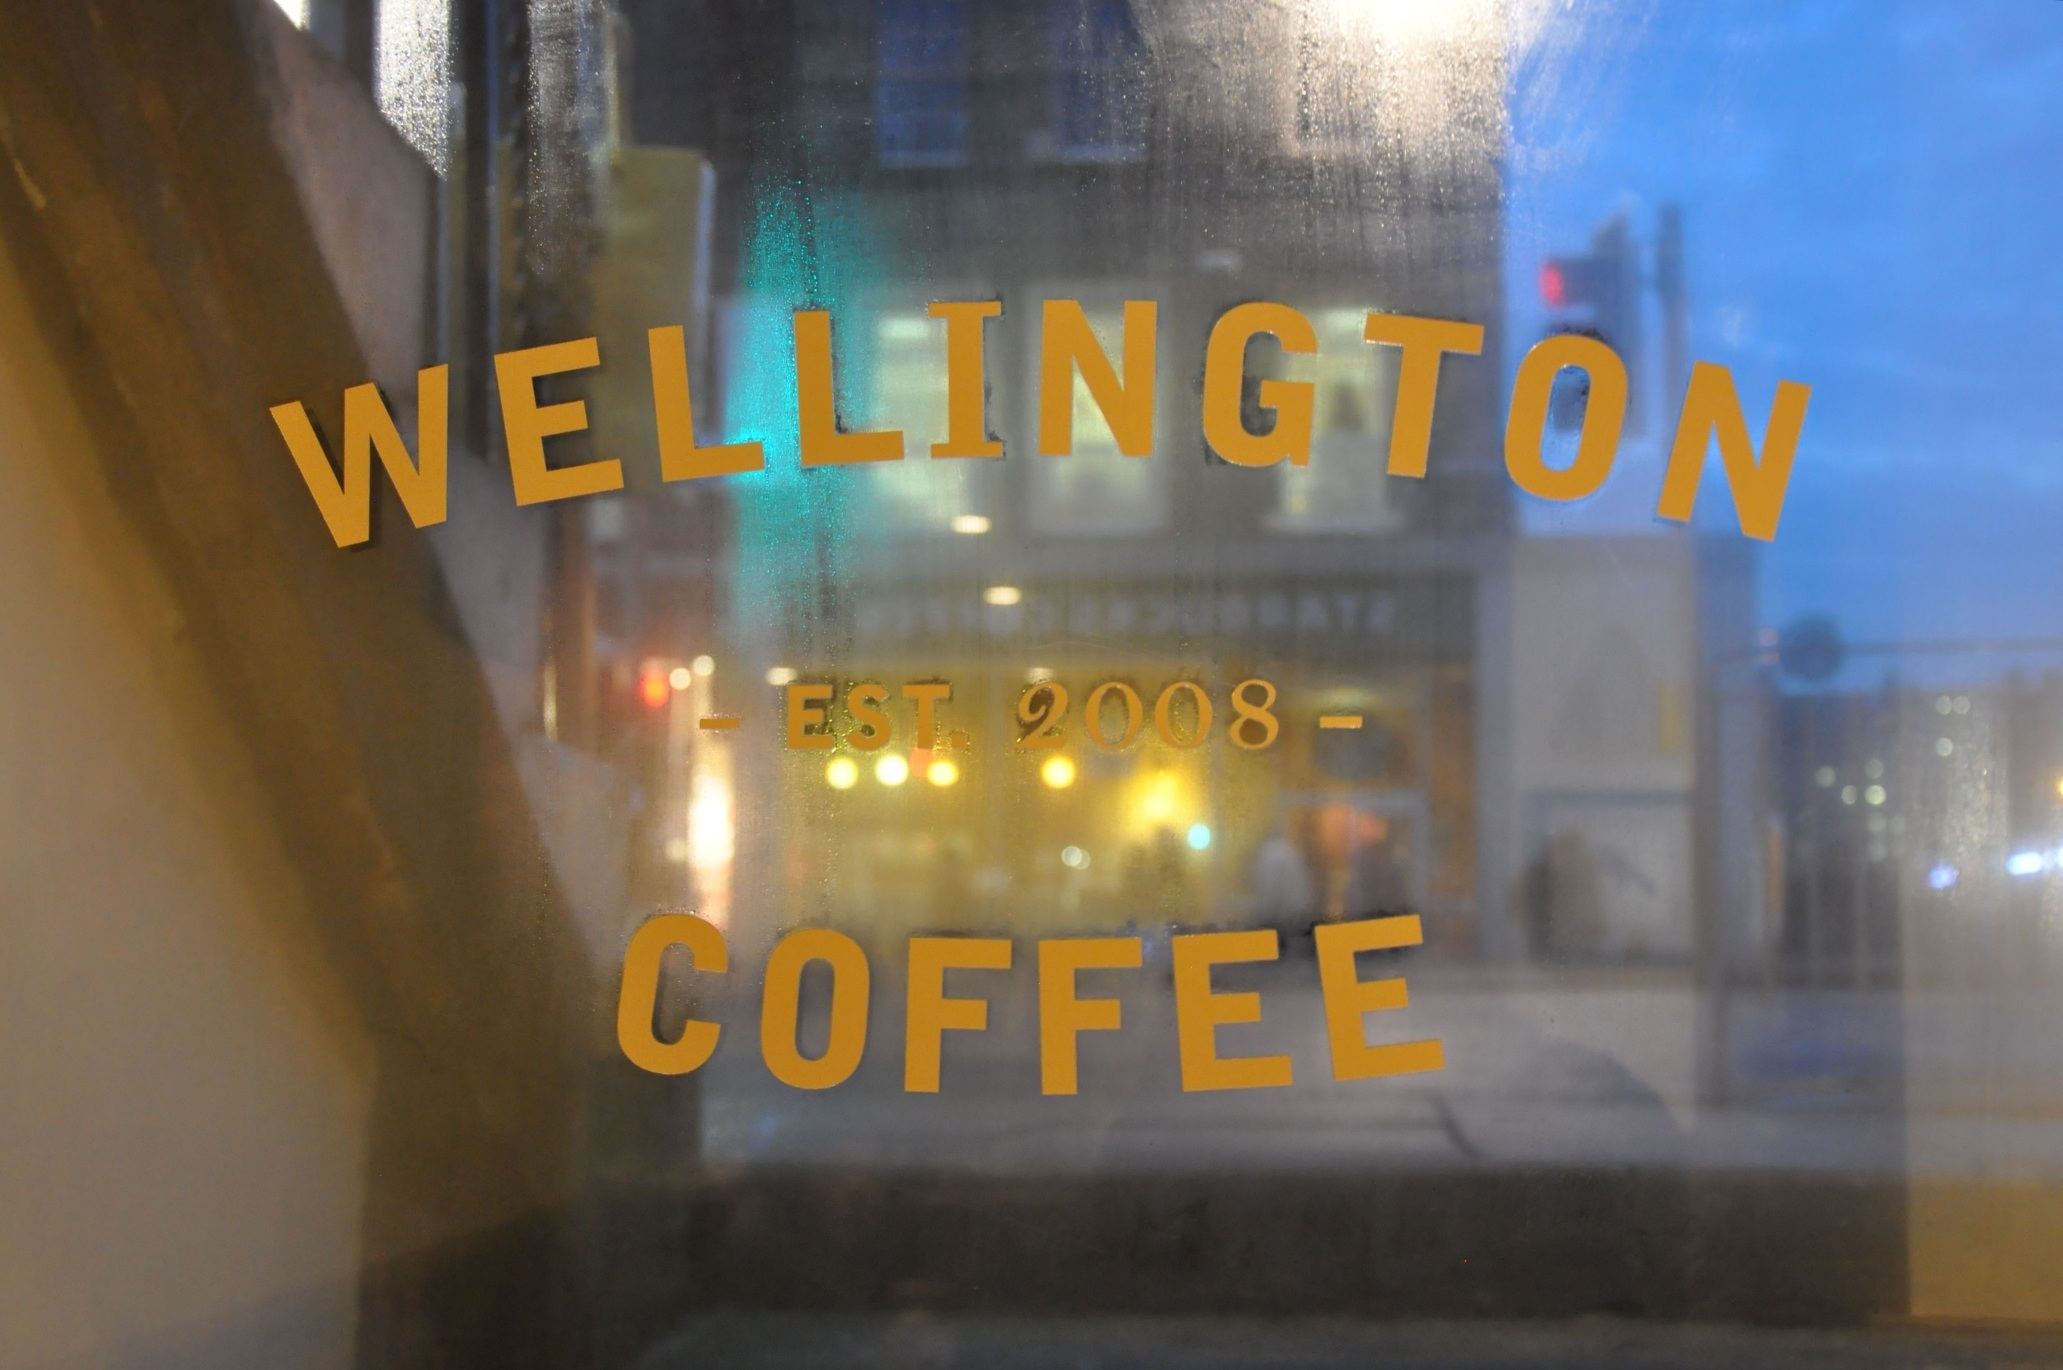 The view through the door of Wellington Coffee